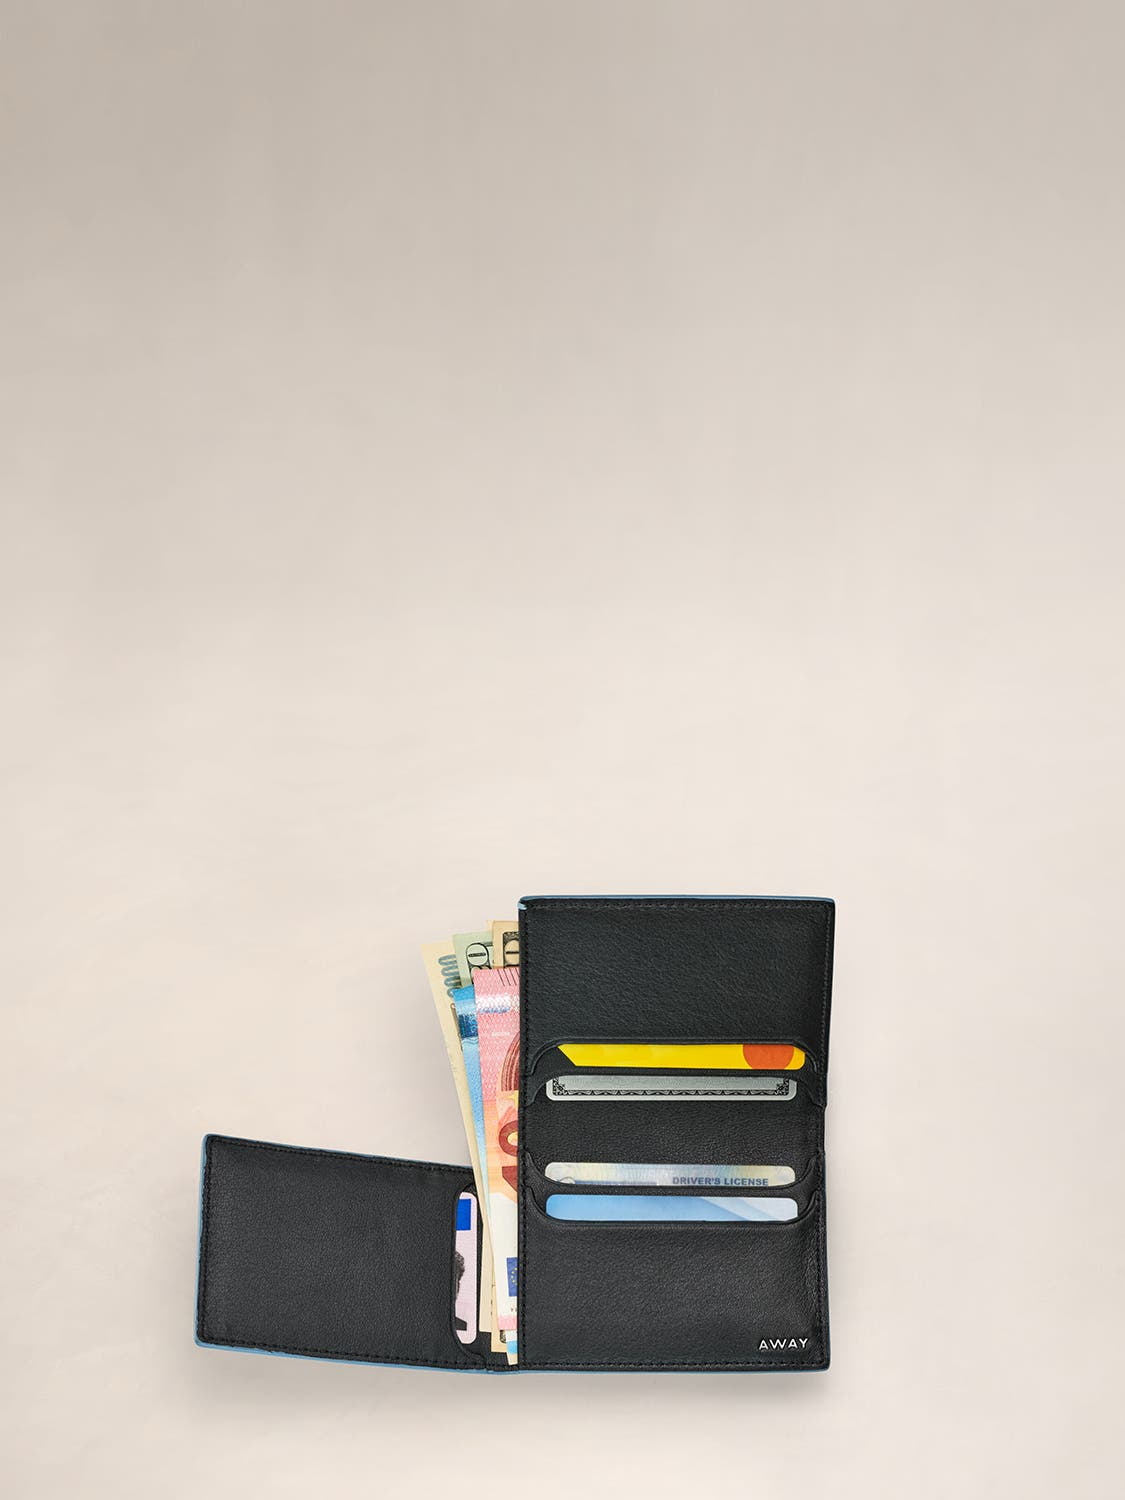 An open view of a coast L Fold wallet with cards and cash inserted in various pockets.